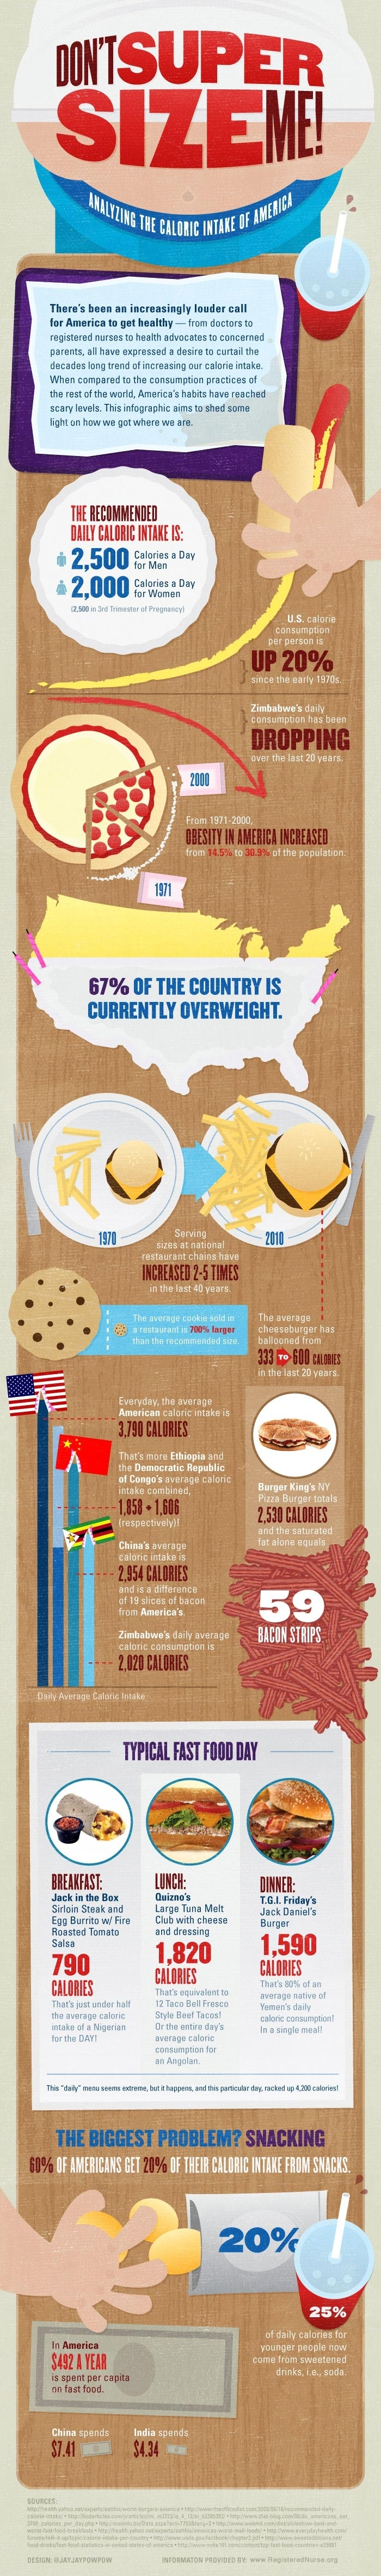 Eating Habits of America